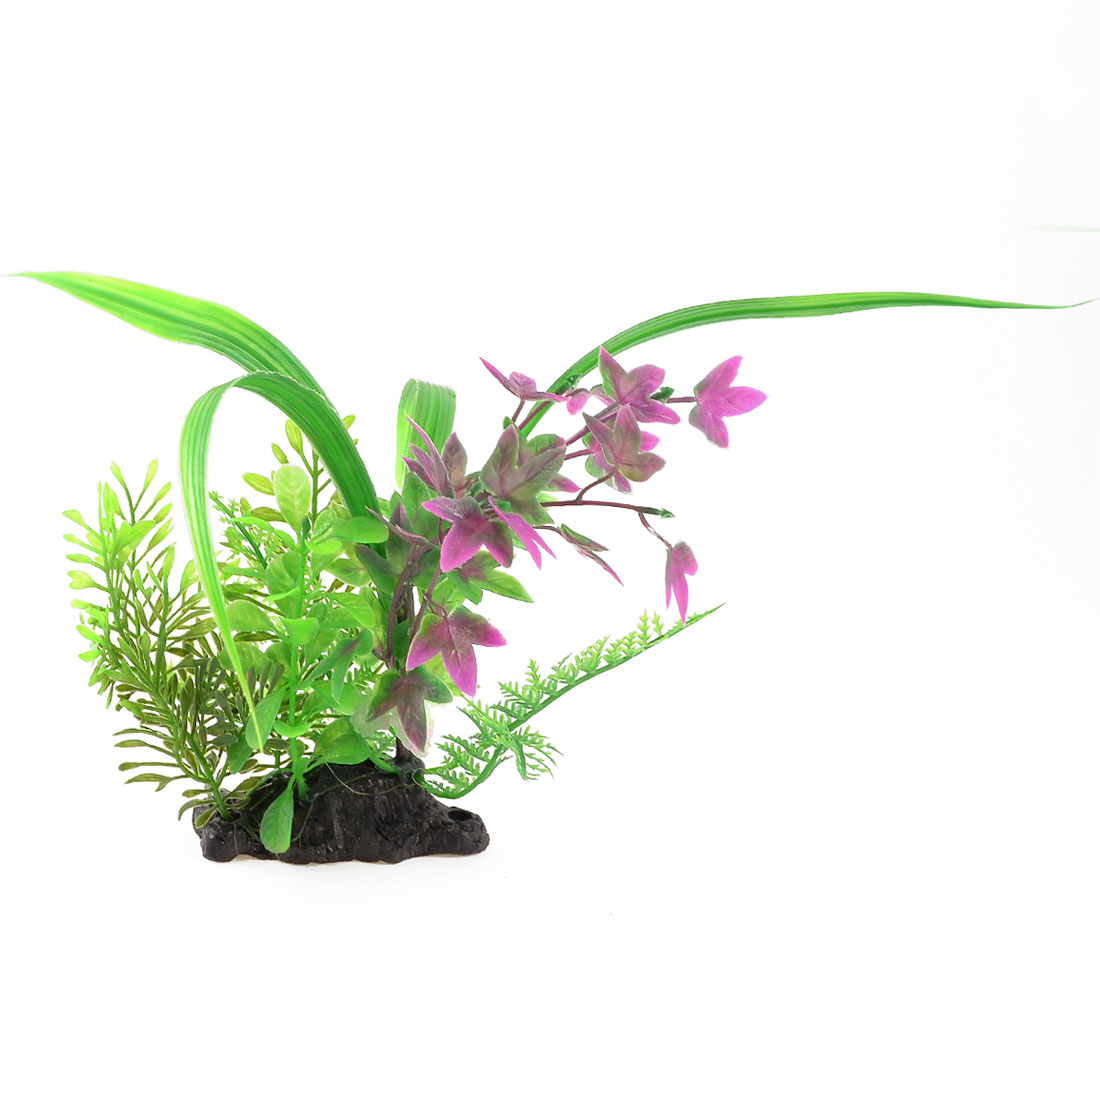 "9.4"" Fish Tank Landscaping Ornament Plastic Water Grass Plants Green Violet"